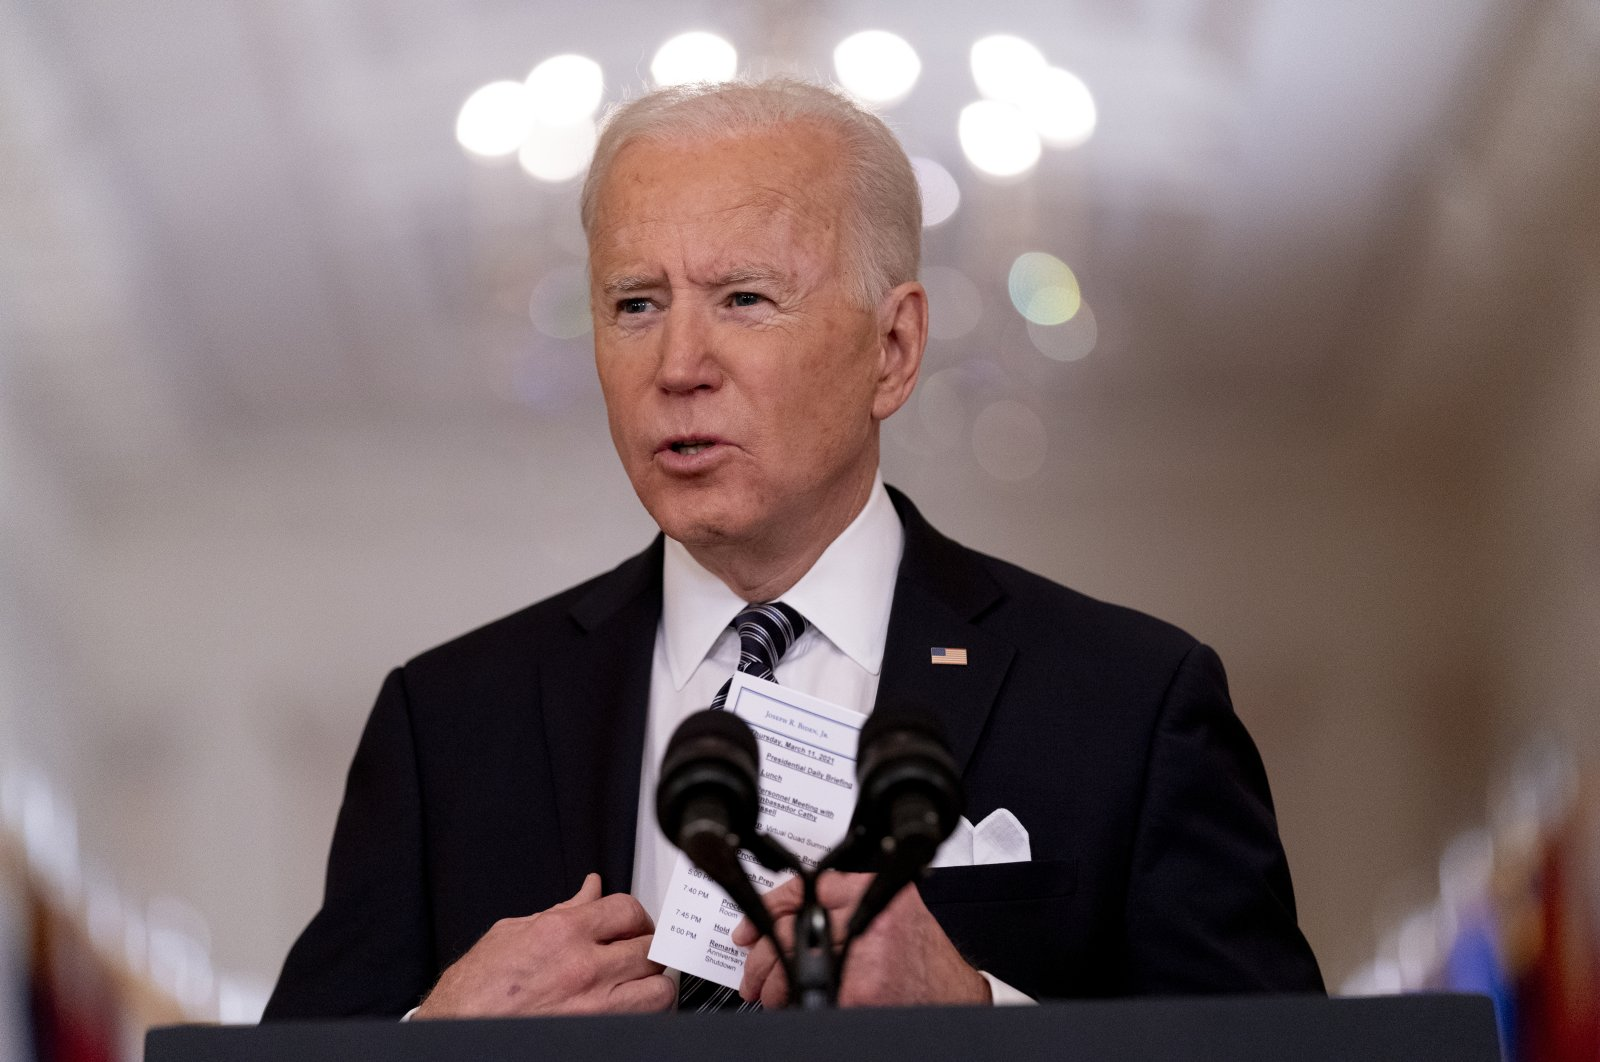 President Joe Biden holds speaks about the COVID-19 pandemic during a press-time address from the East Room of the White House in Washington, D.C., U.S., March 11, 2021. (AP Photo)